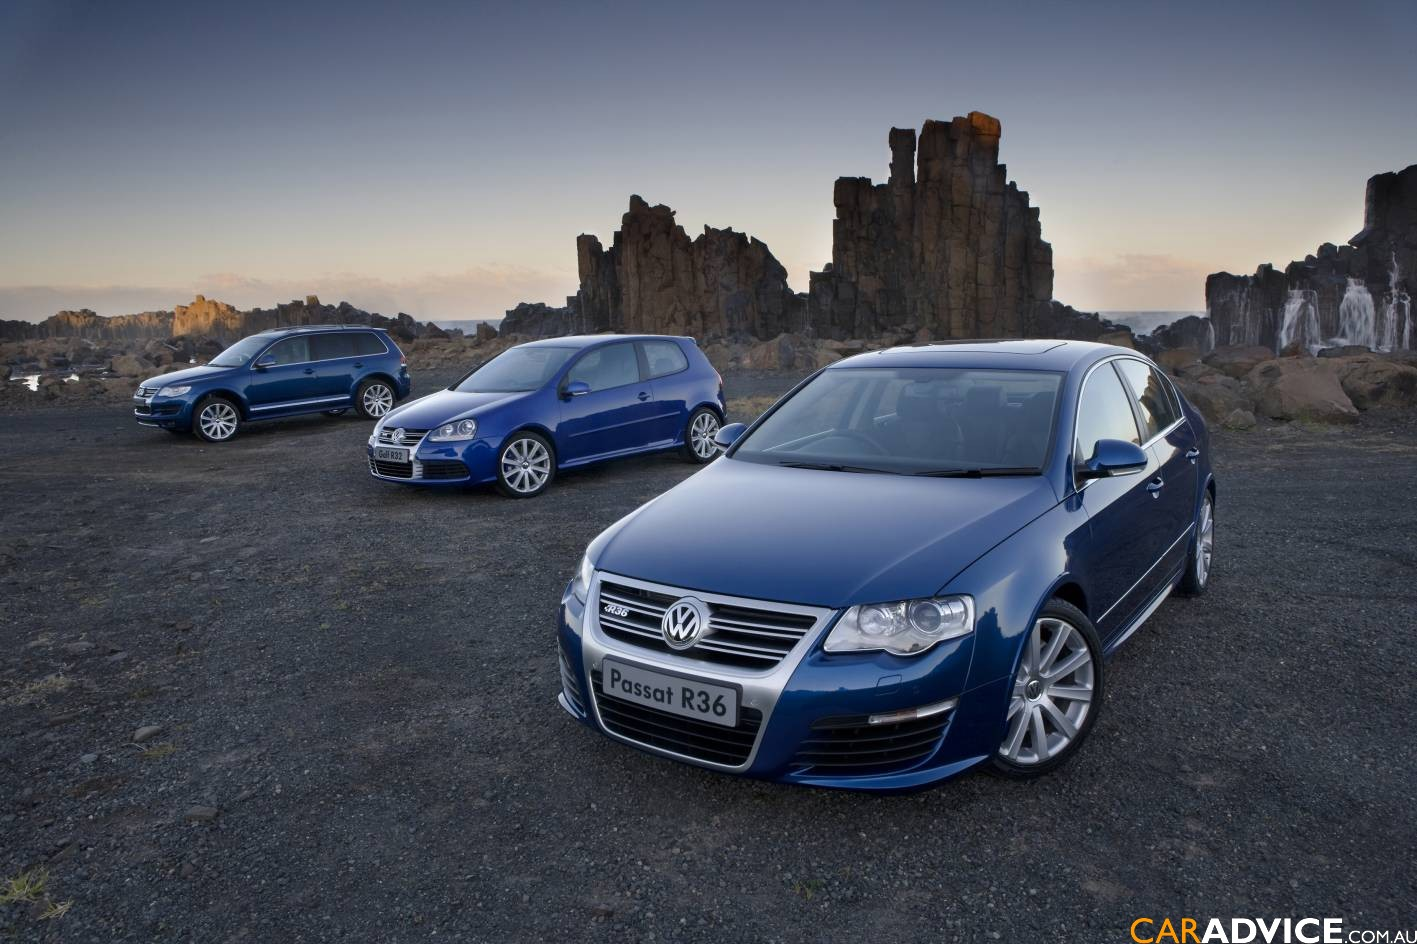 2008 Volkswagen Passat R36 sedan and wagon - photos | CarAdvice